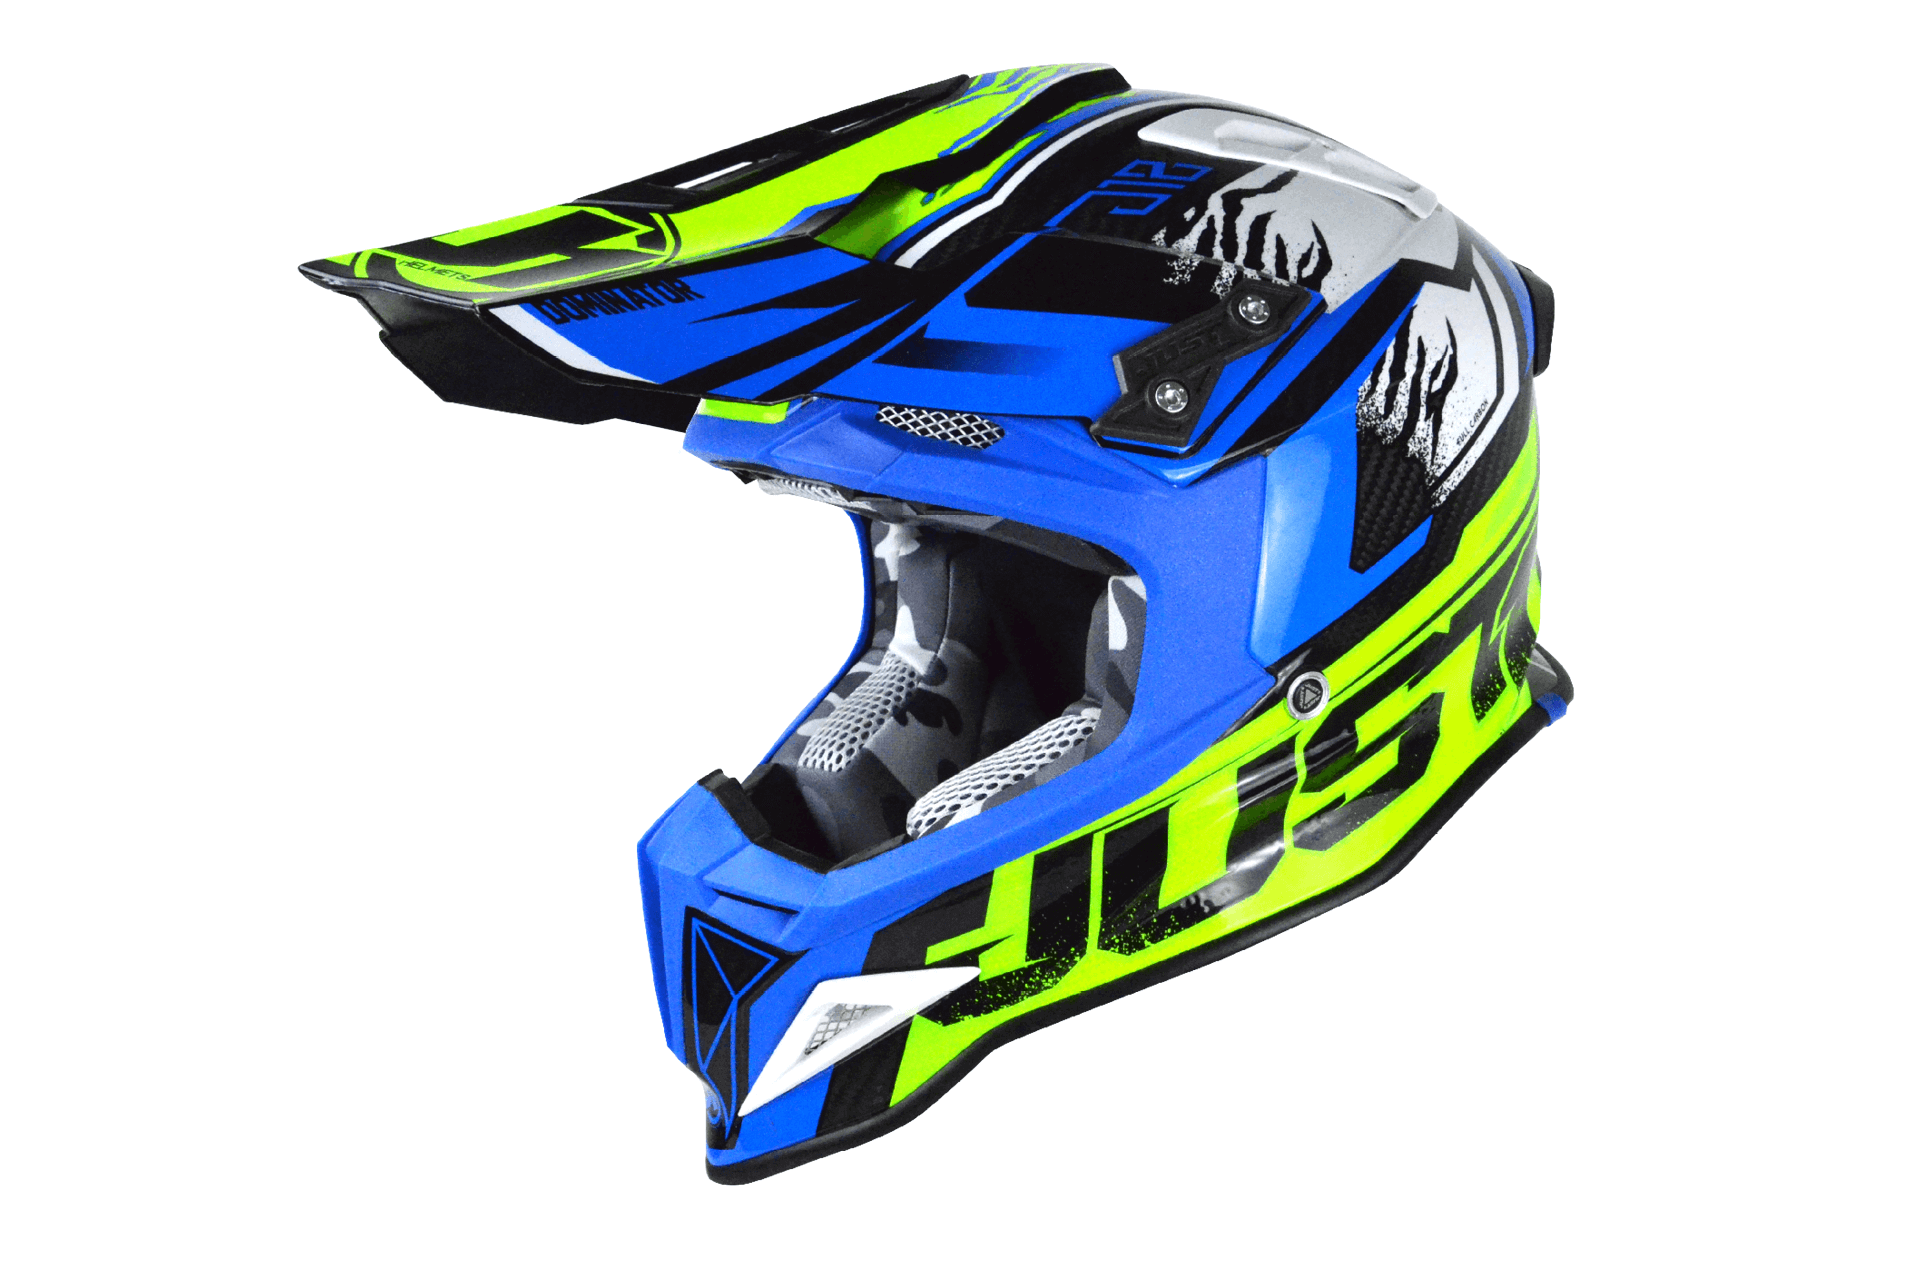 Casco J12 Dominator